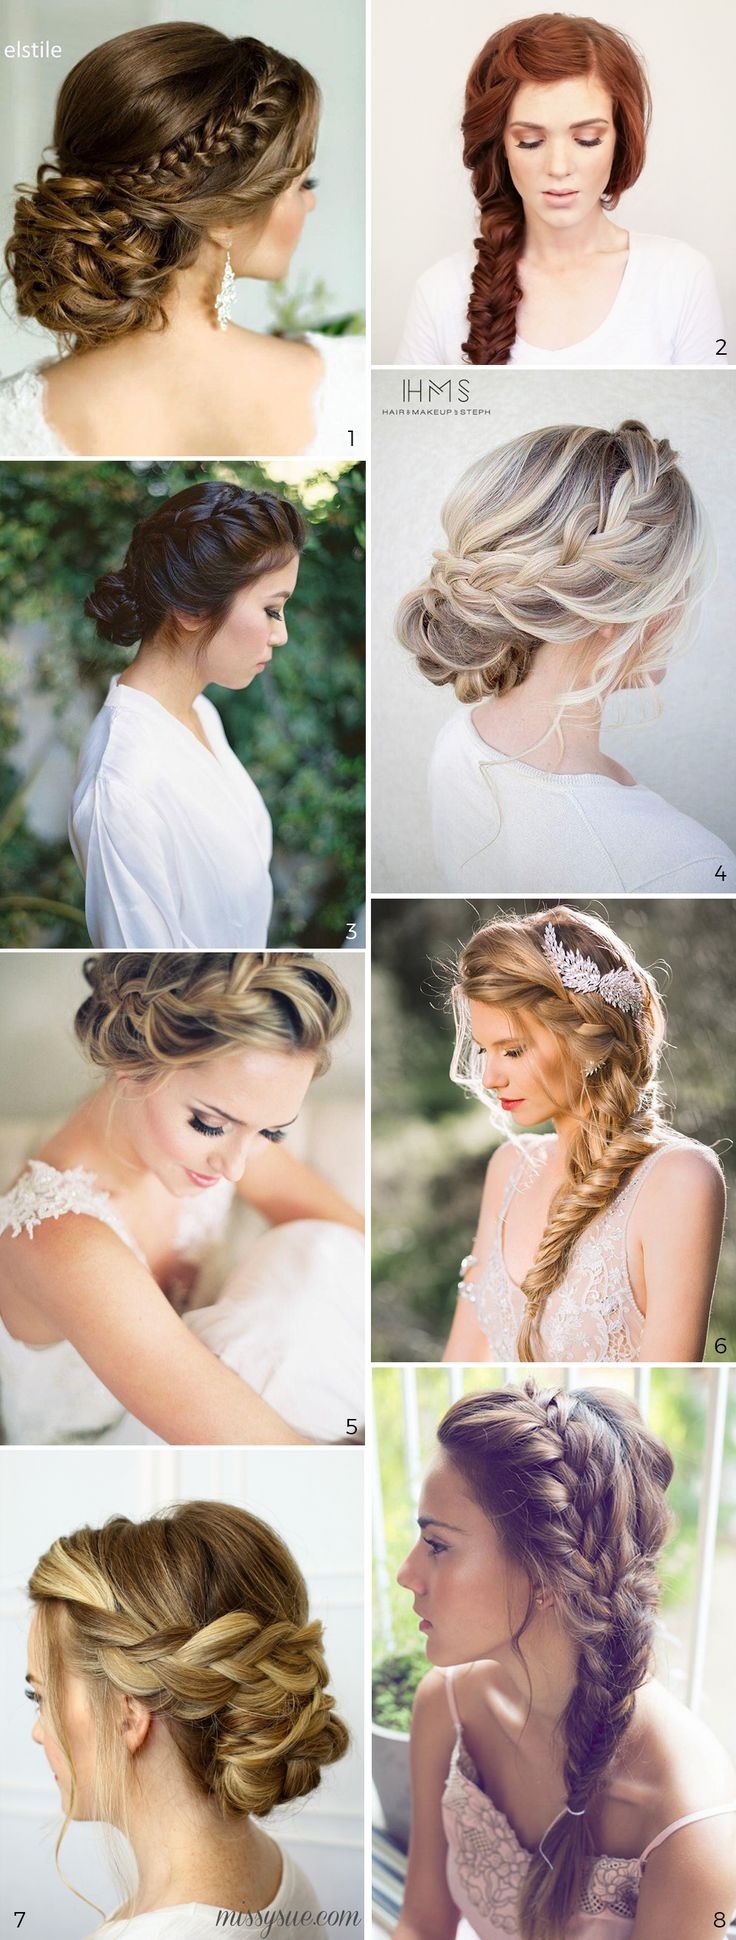 Wedding Hairstyles: 5 Unavoidable Trends. 8 examples of braided hairstyles for the bride.